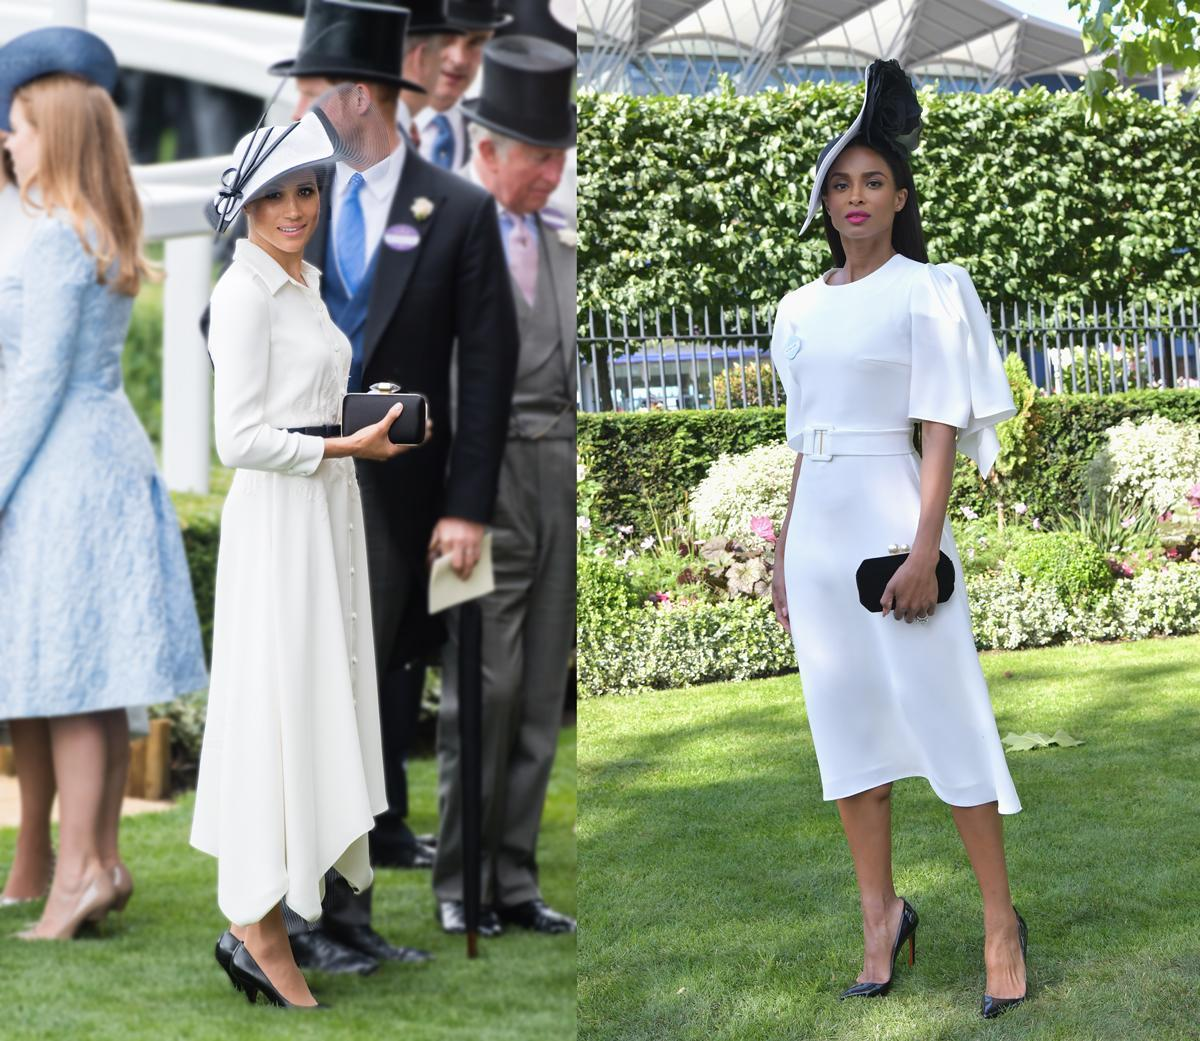 Meghan wore Givenchy, while Ciara opted for Edeline Lee. (Photo: Getty Images)